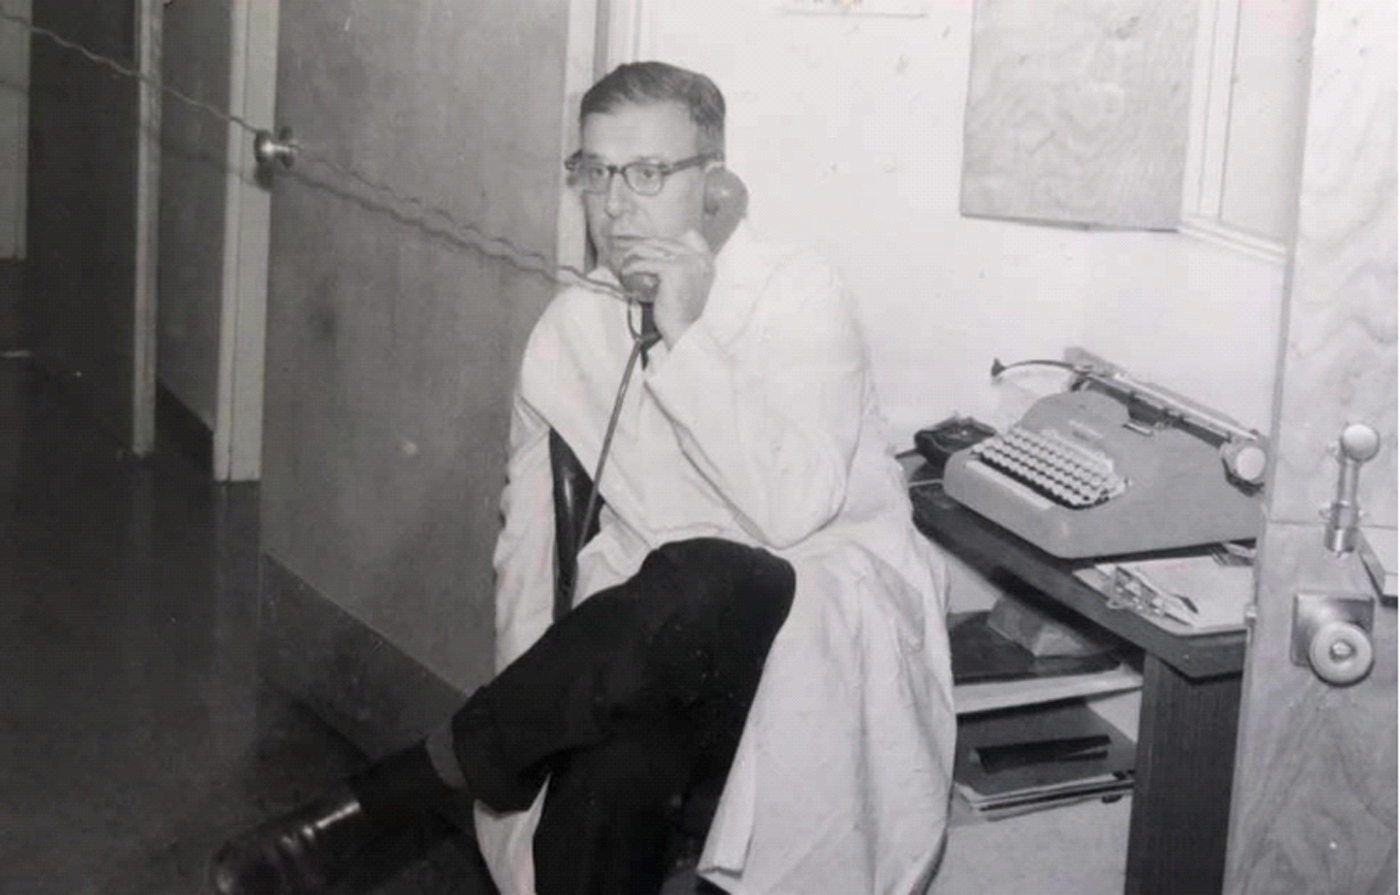 Dr. Seymour Diamond during his career as a renowned headache doctor.